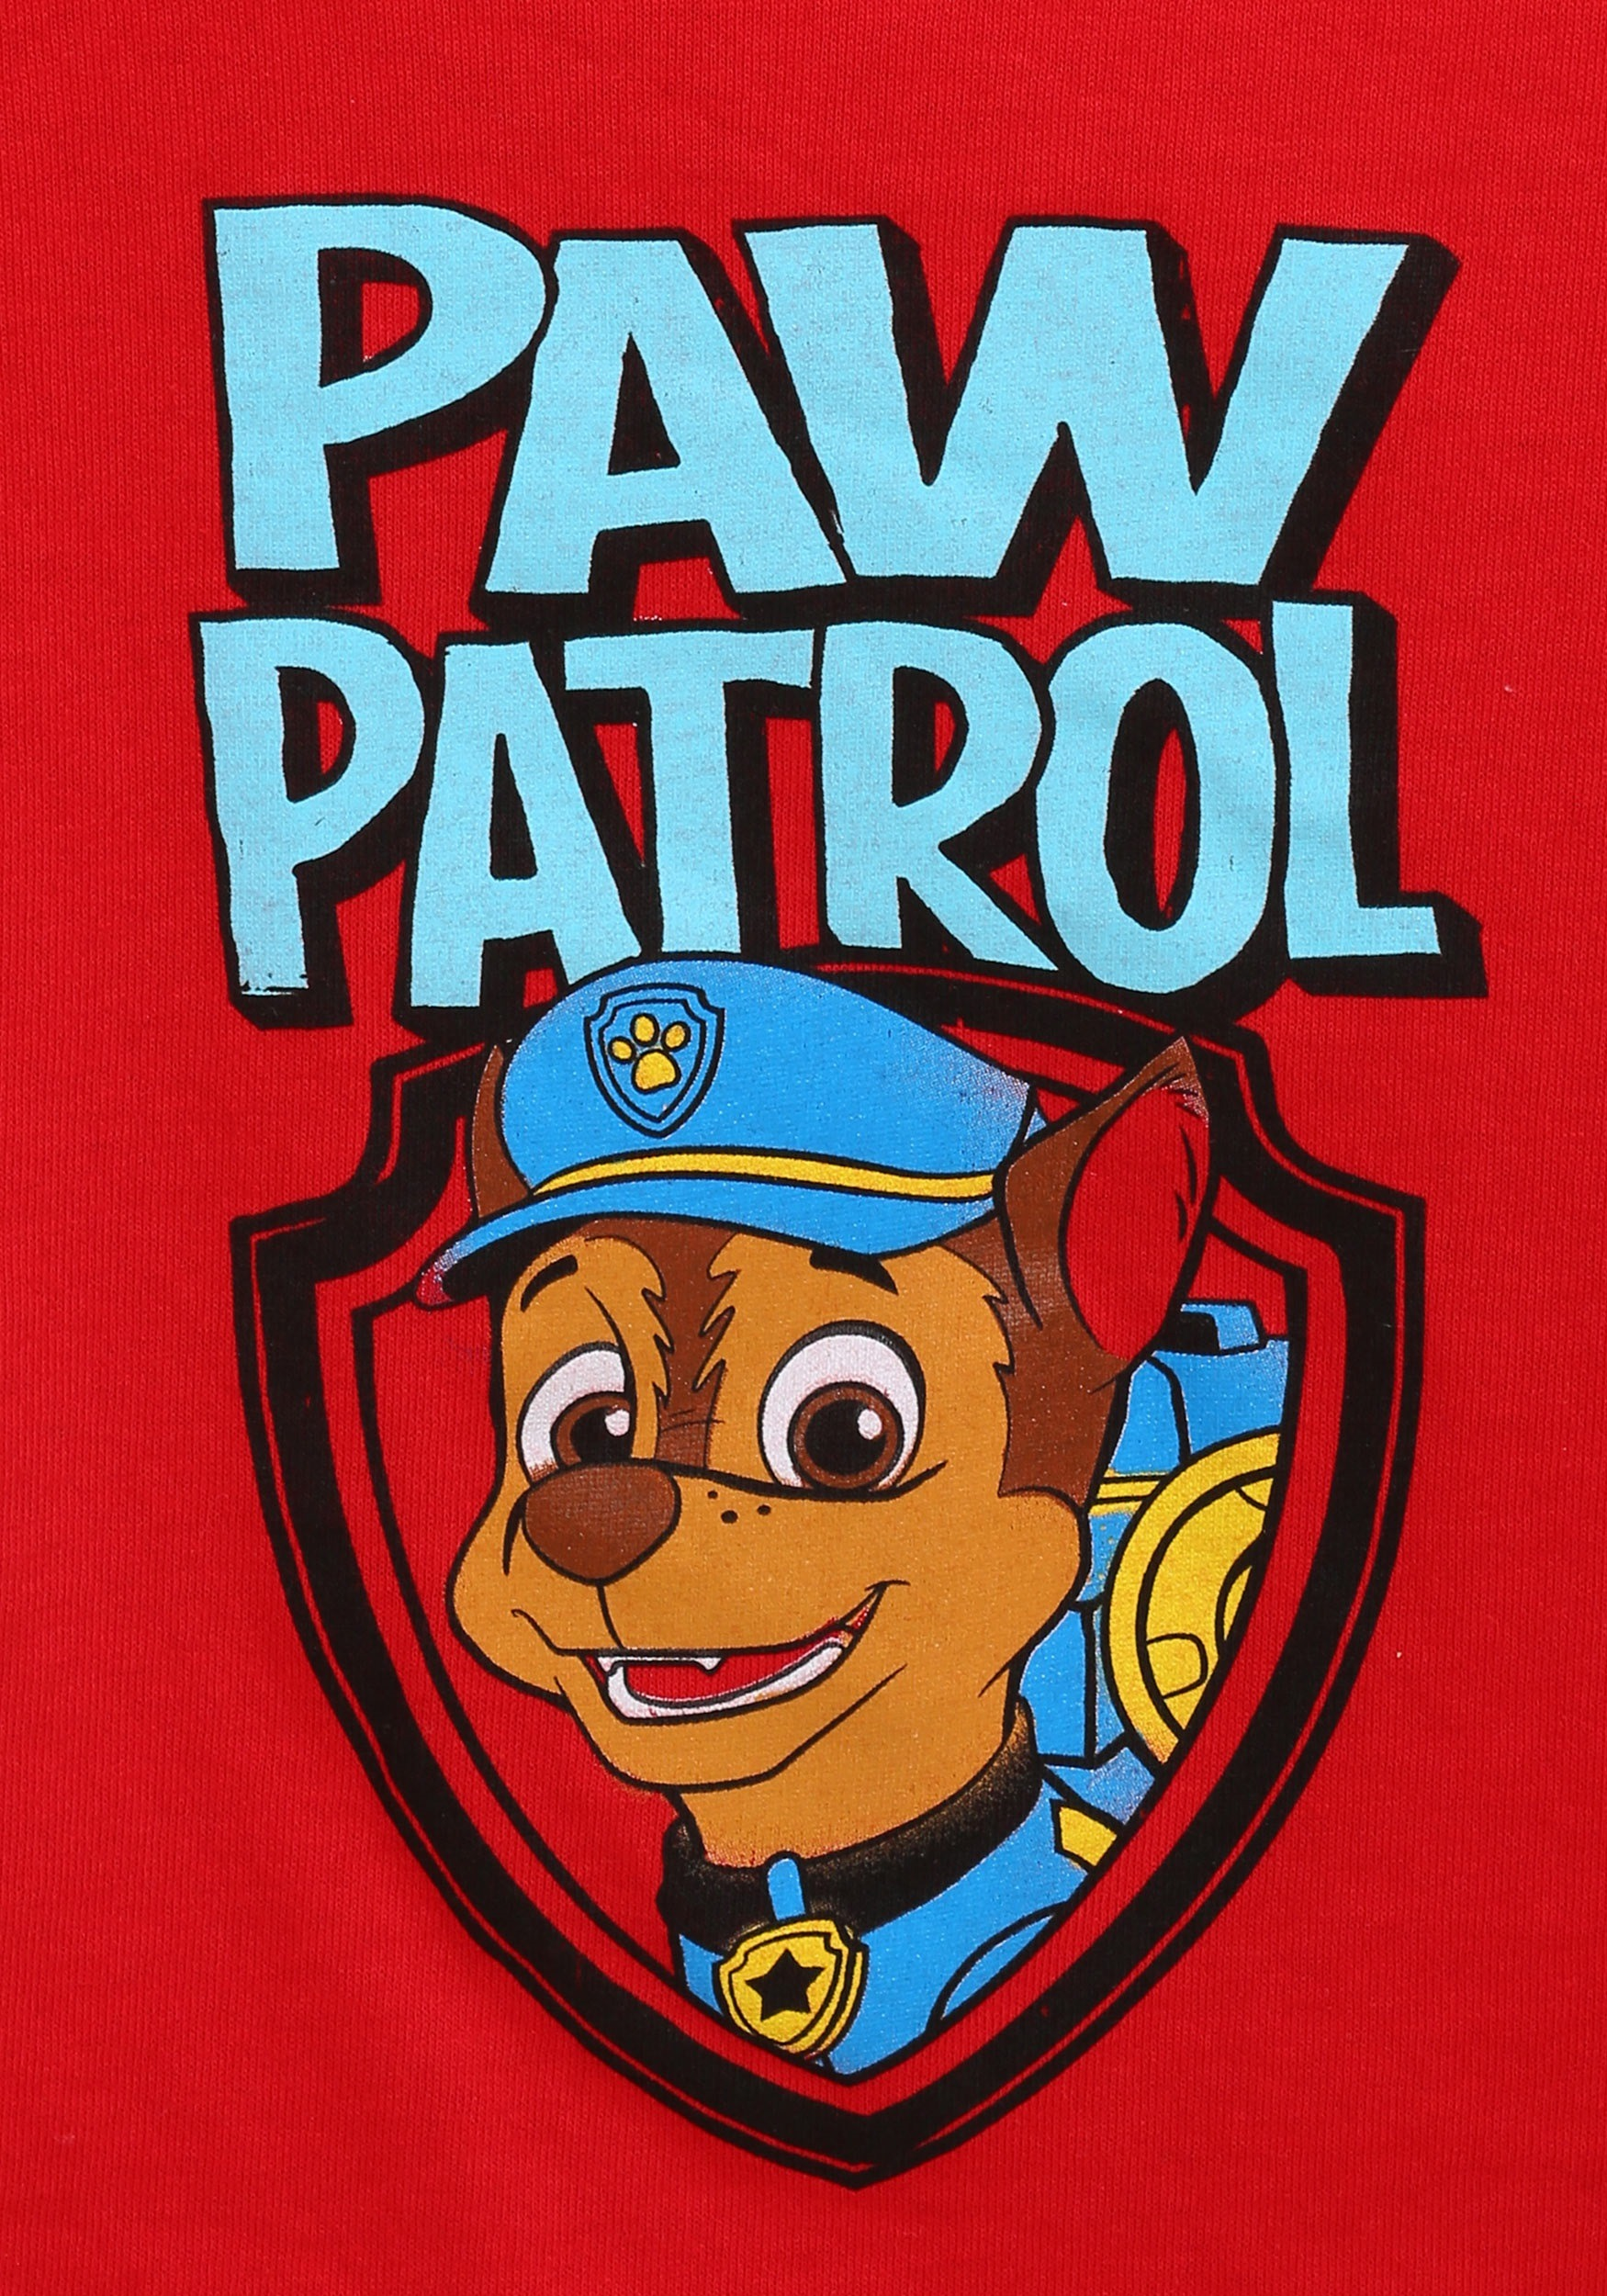 paw patrol chase face toddler boys tshirt